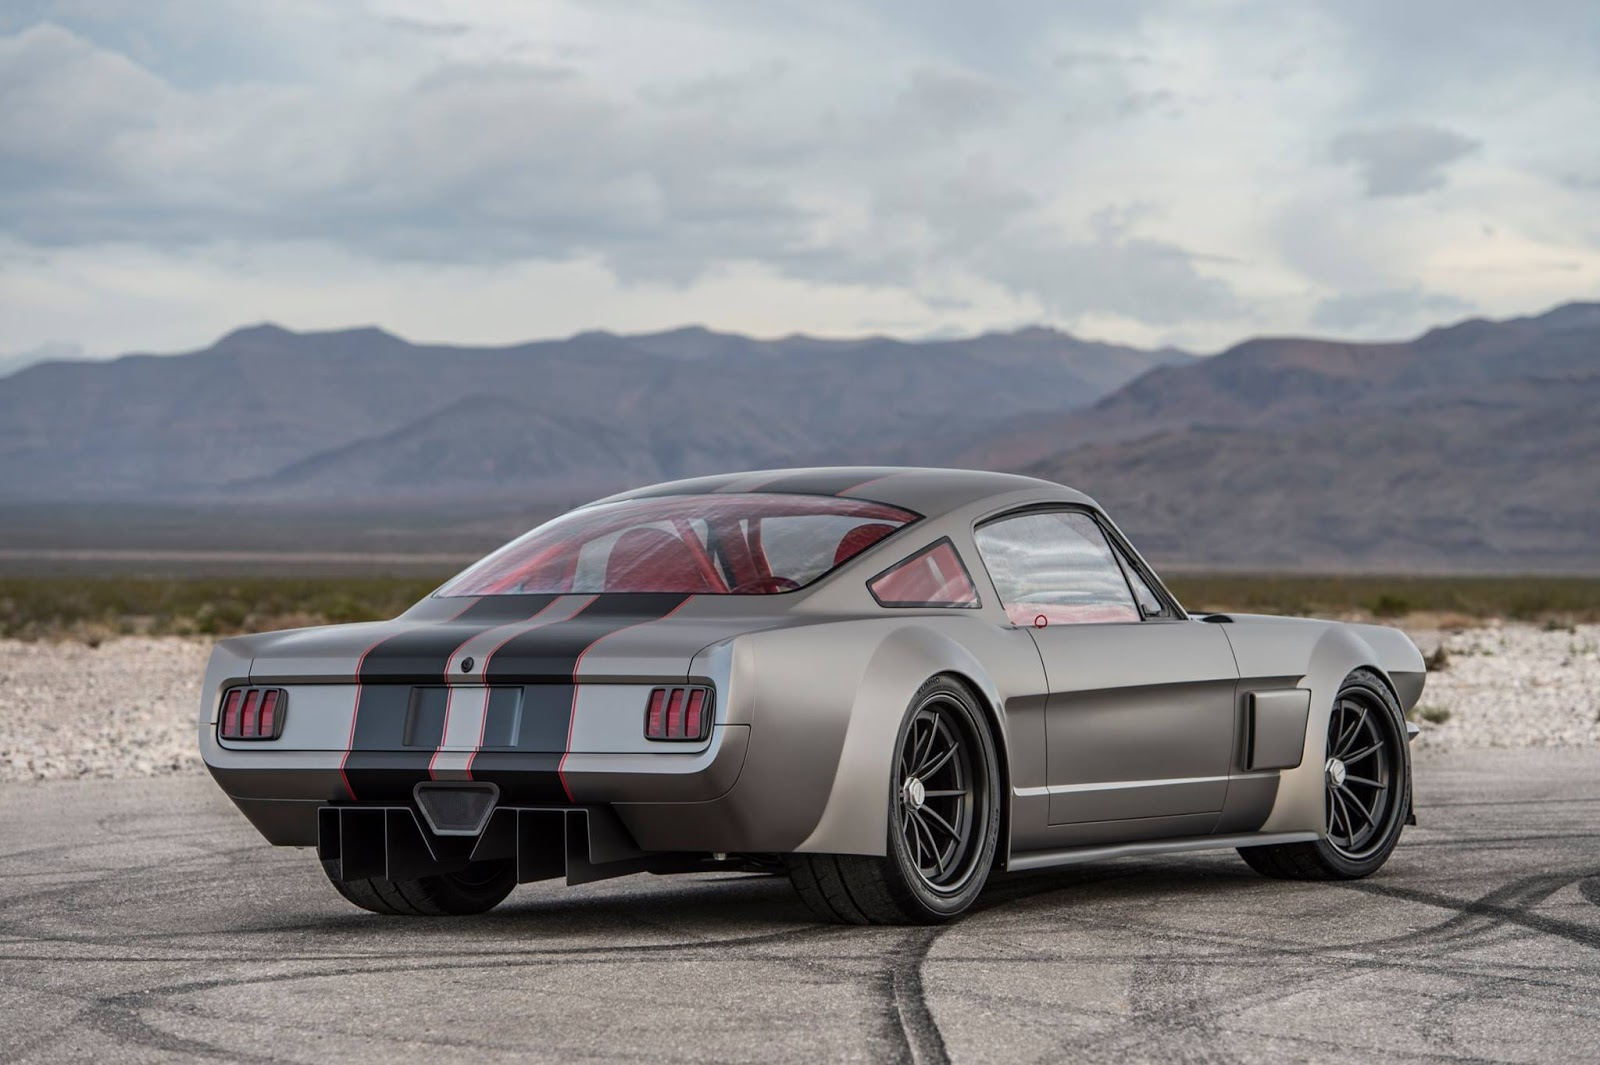 Twin-Turbo Mustang by Timeless Kustoms (3)